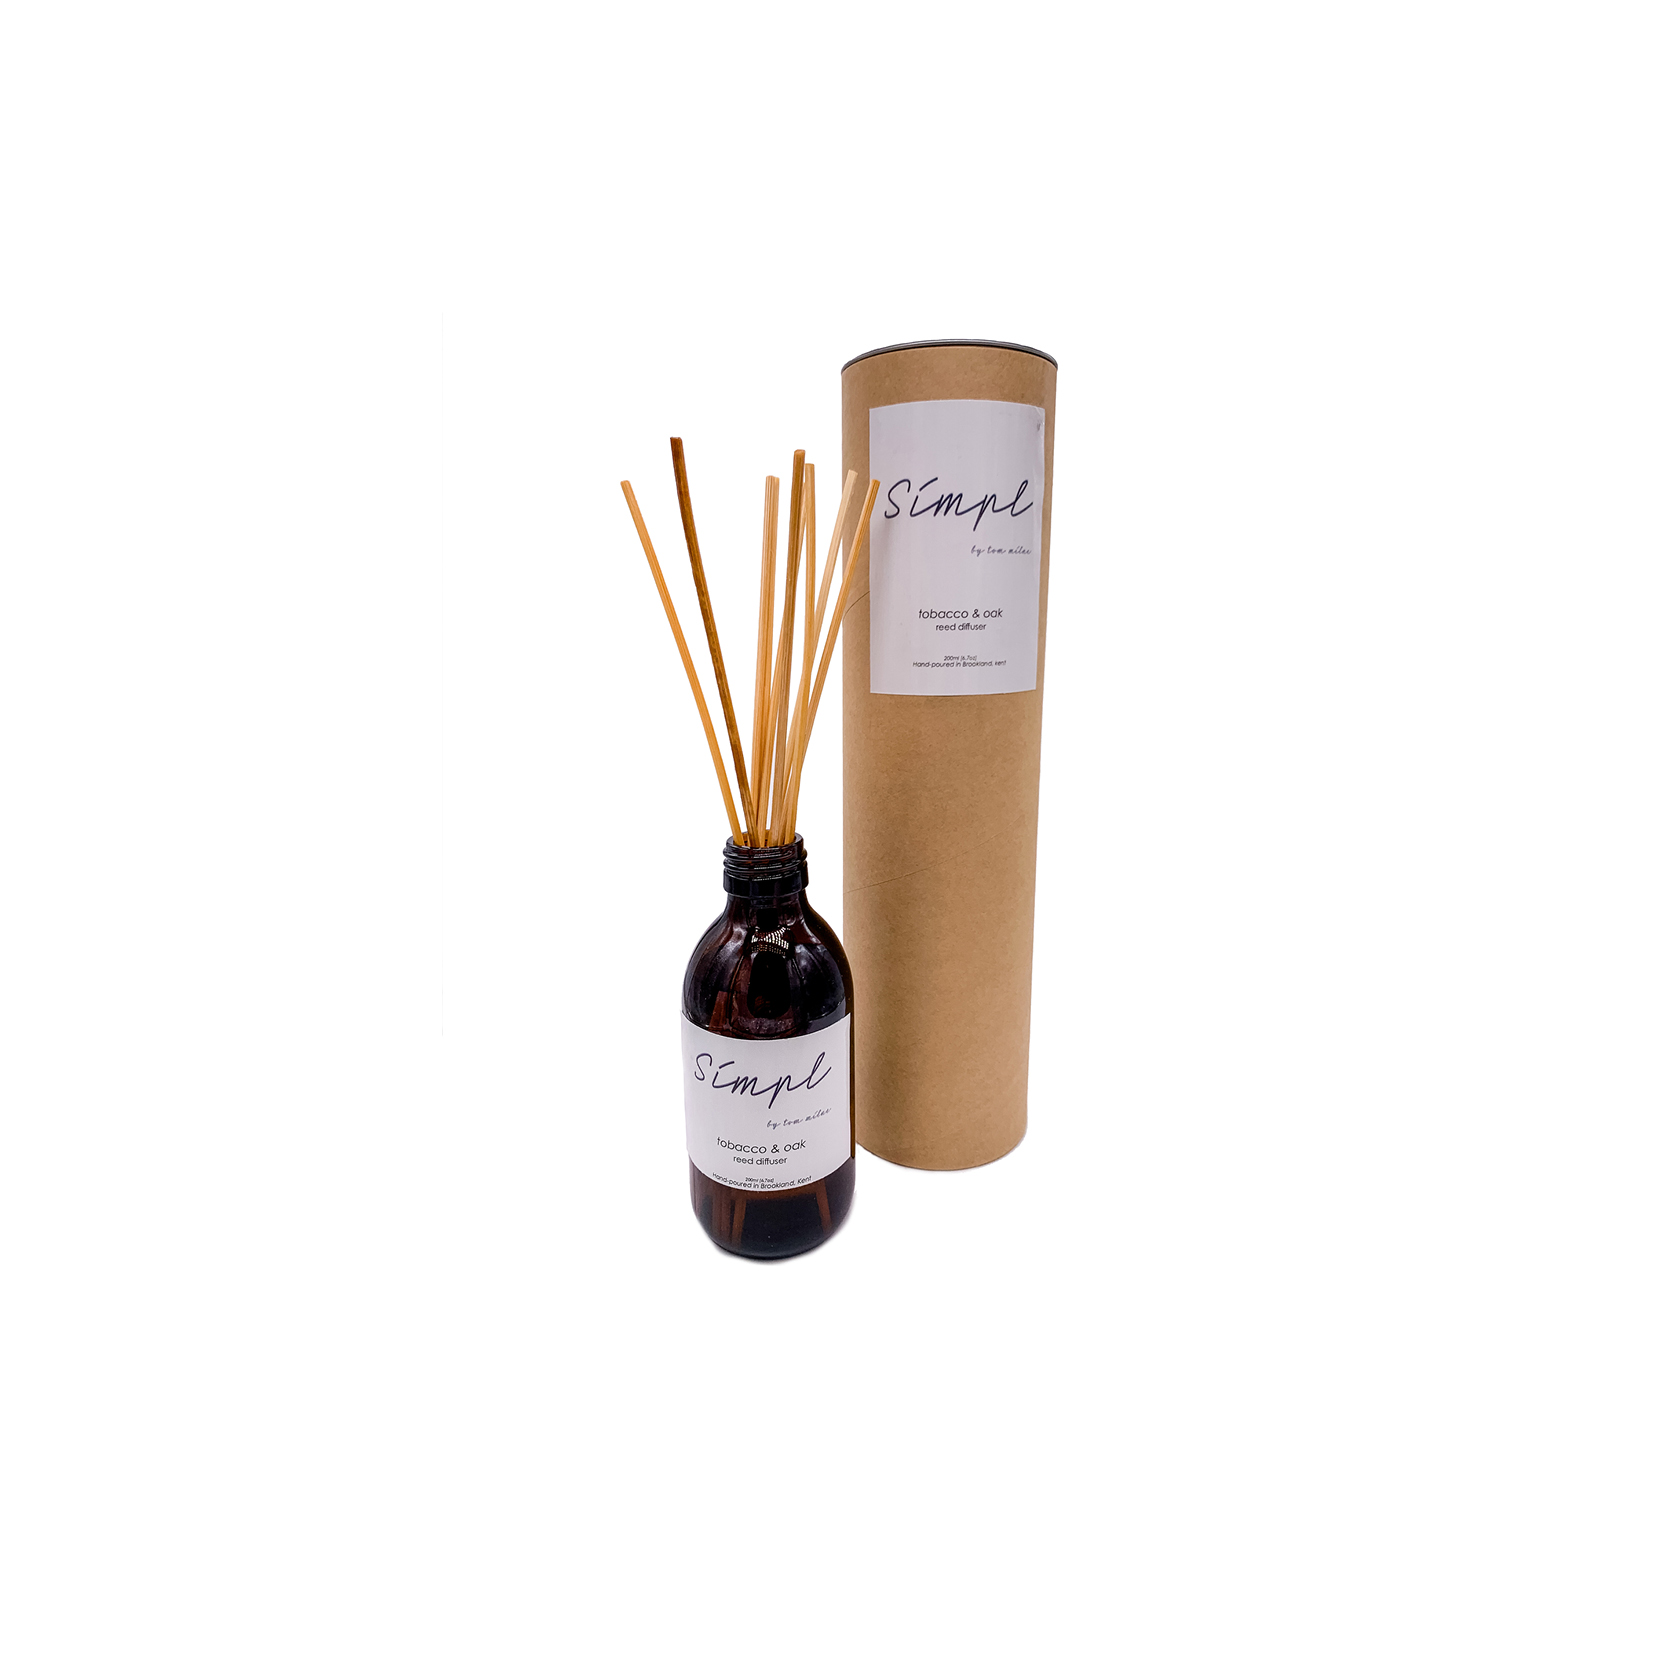 Simpl | Tom Milne - Tobacco and Oak Reed Diffuser